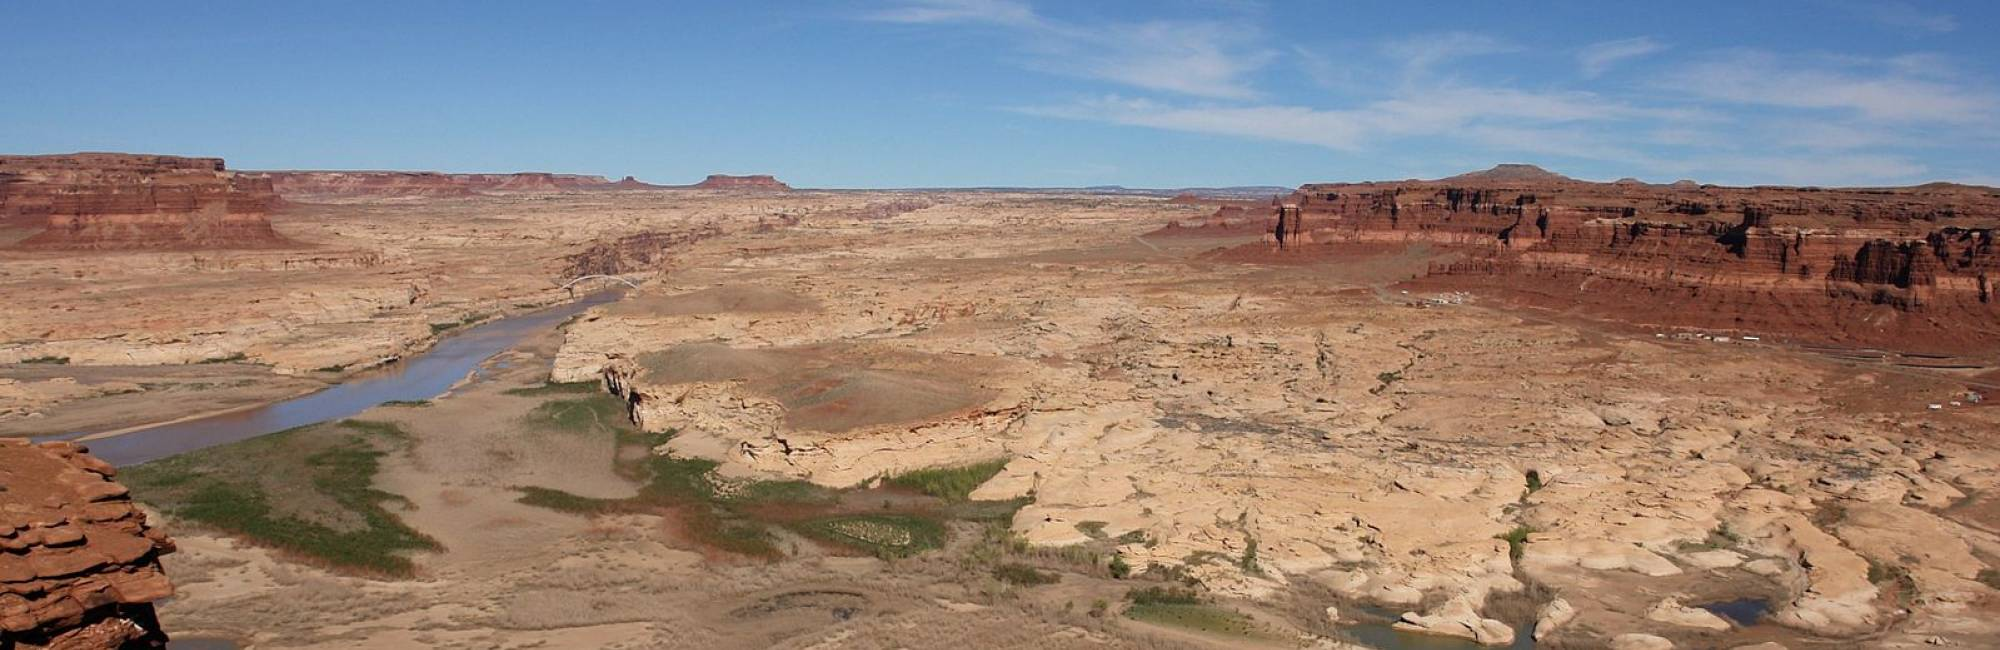 Dry river in a canyon